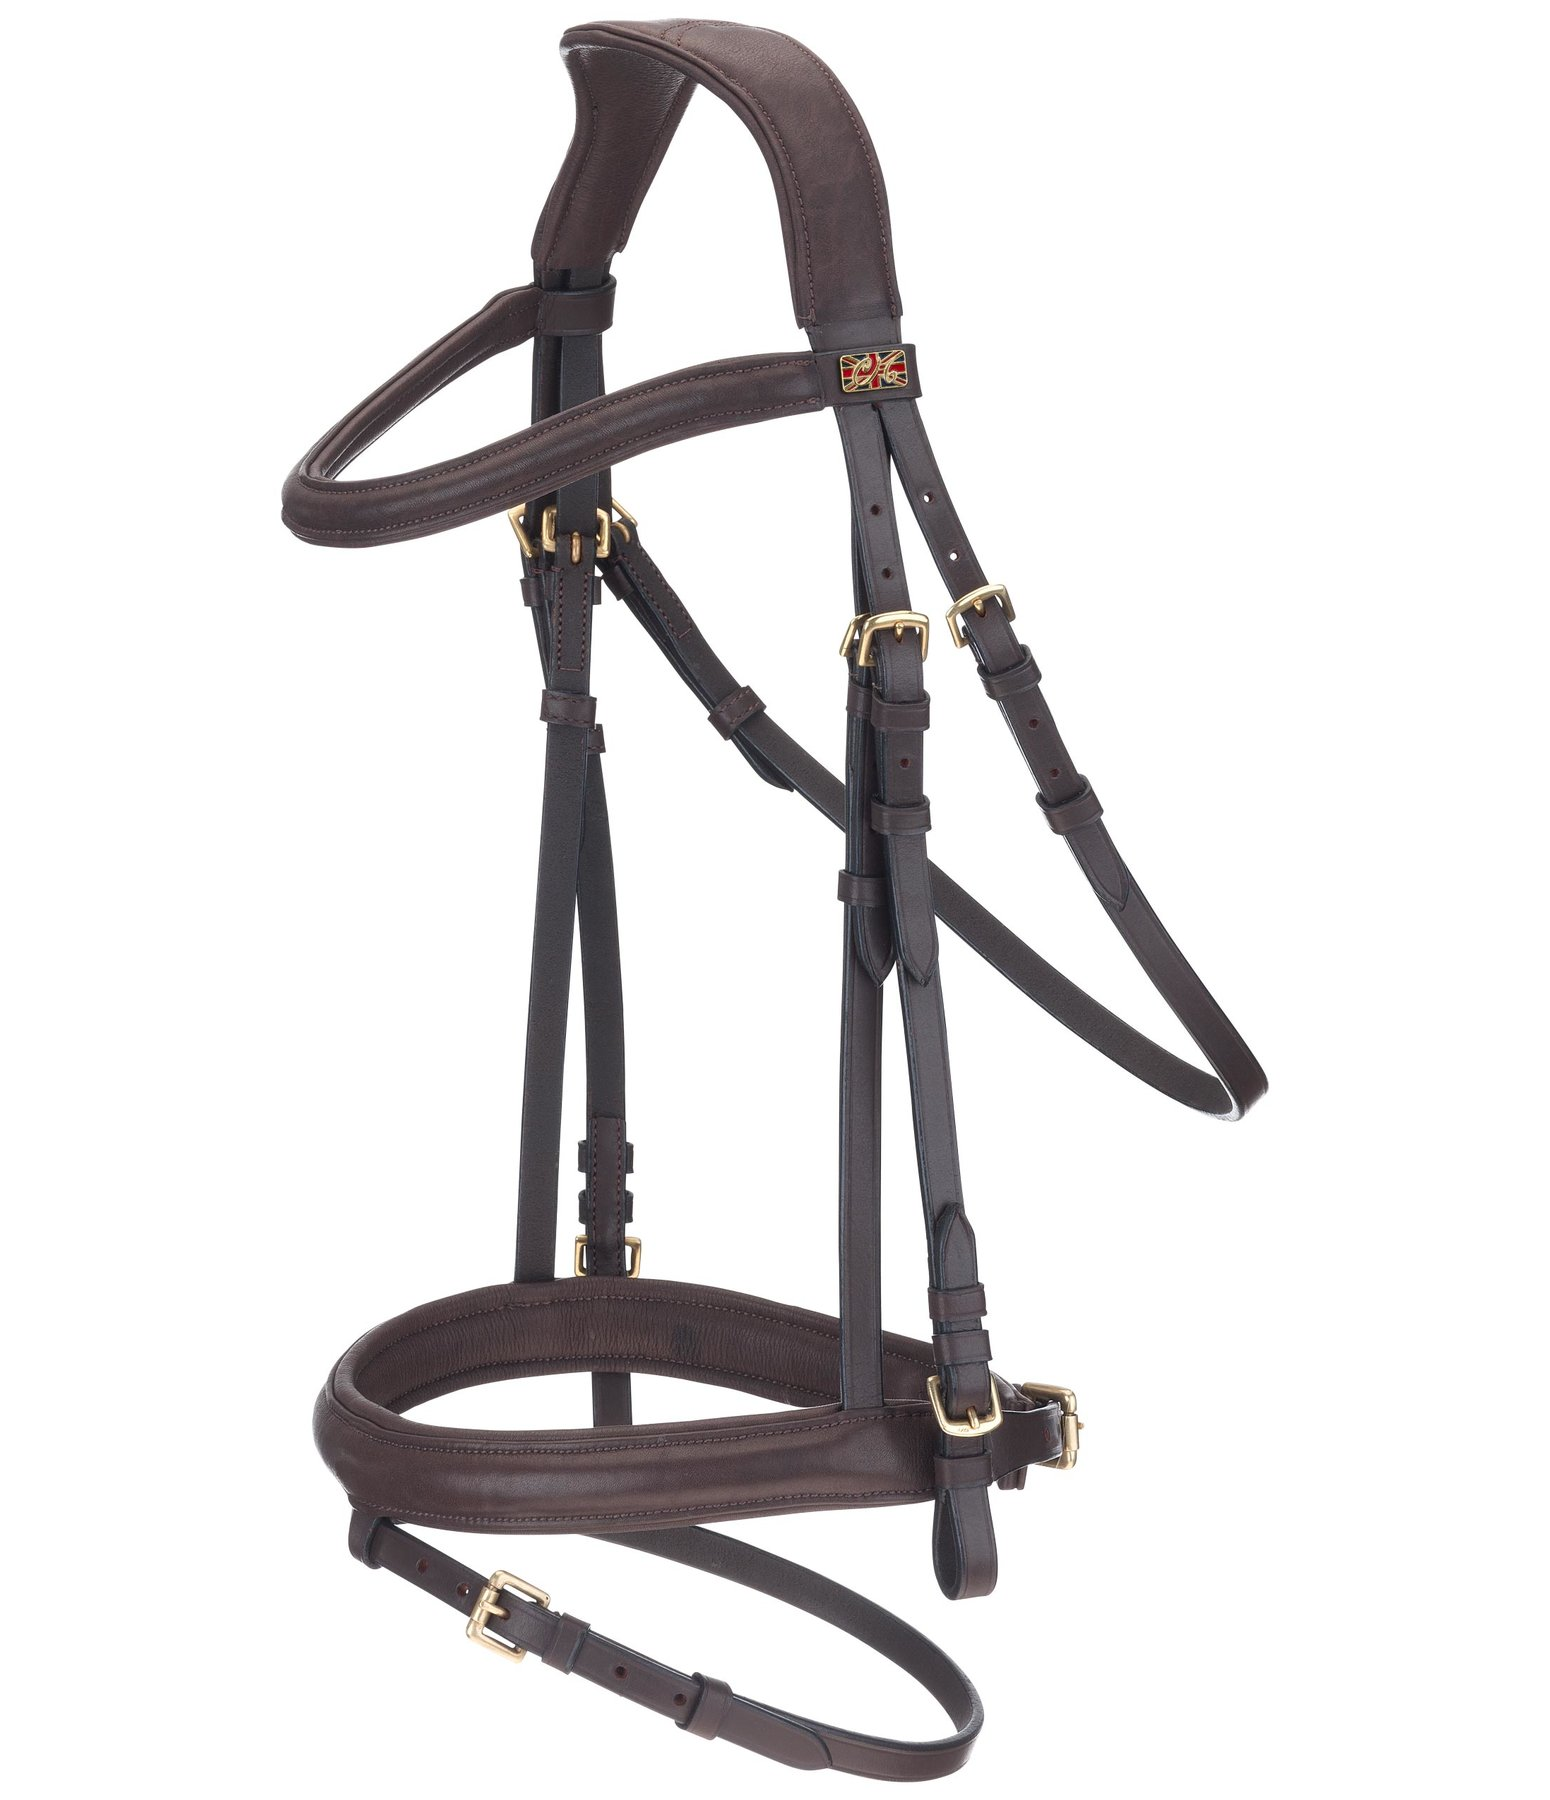 Flash Bridle Soft Comfort